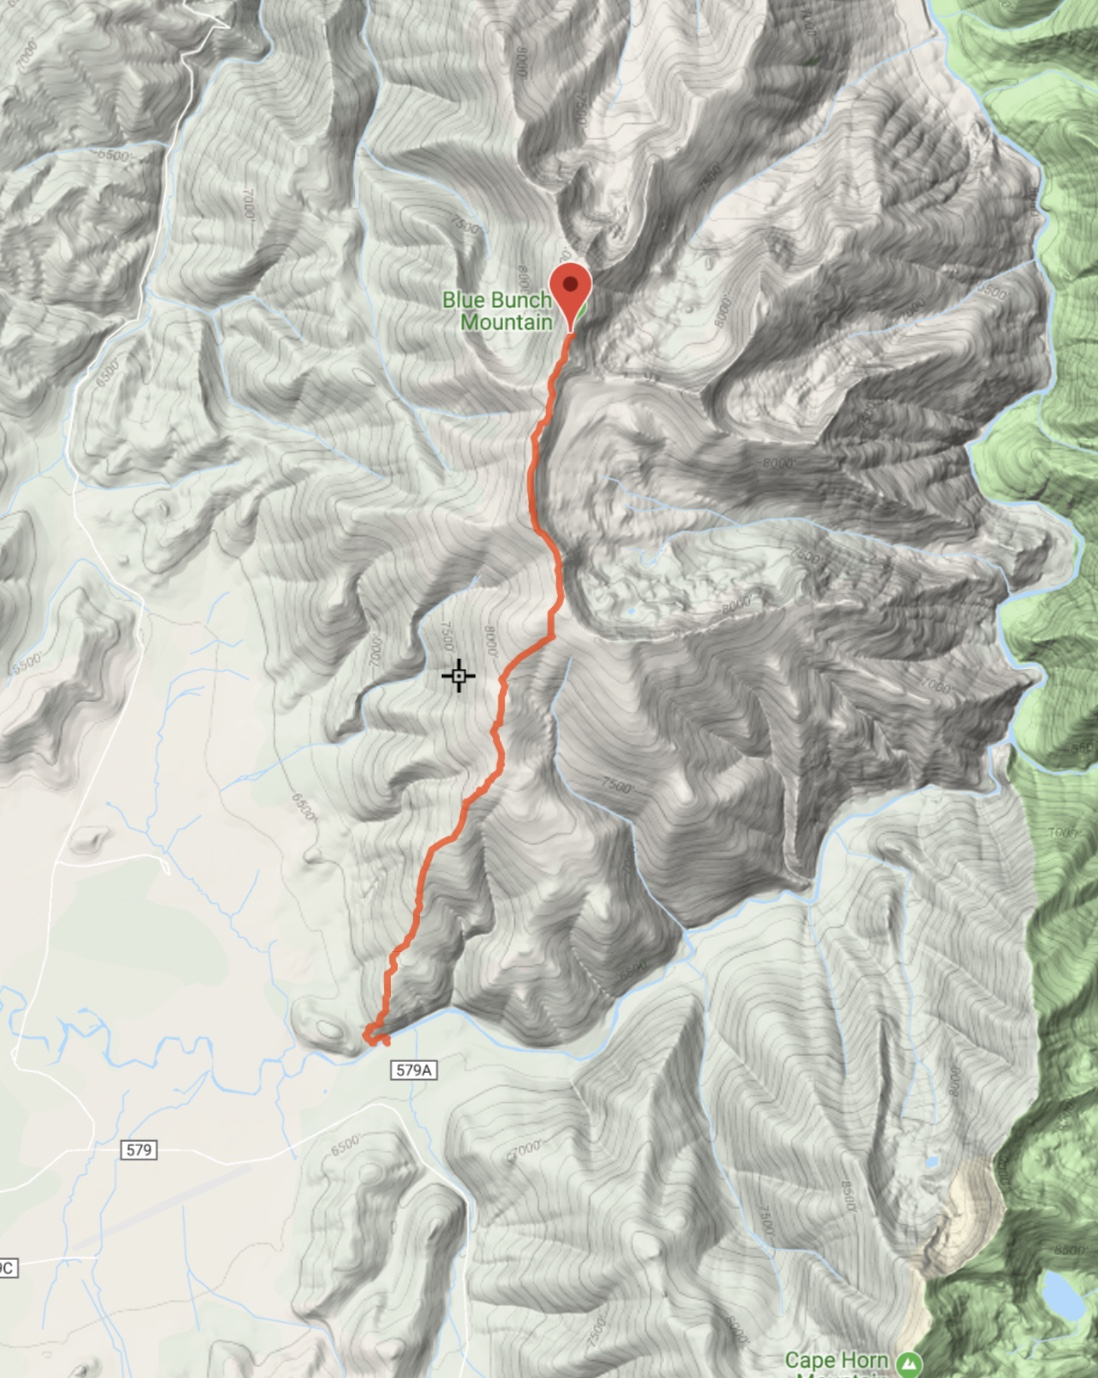 Ken Jone's GPS track mared 4.4 miles with 2,514 feet of elevation gain.